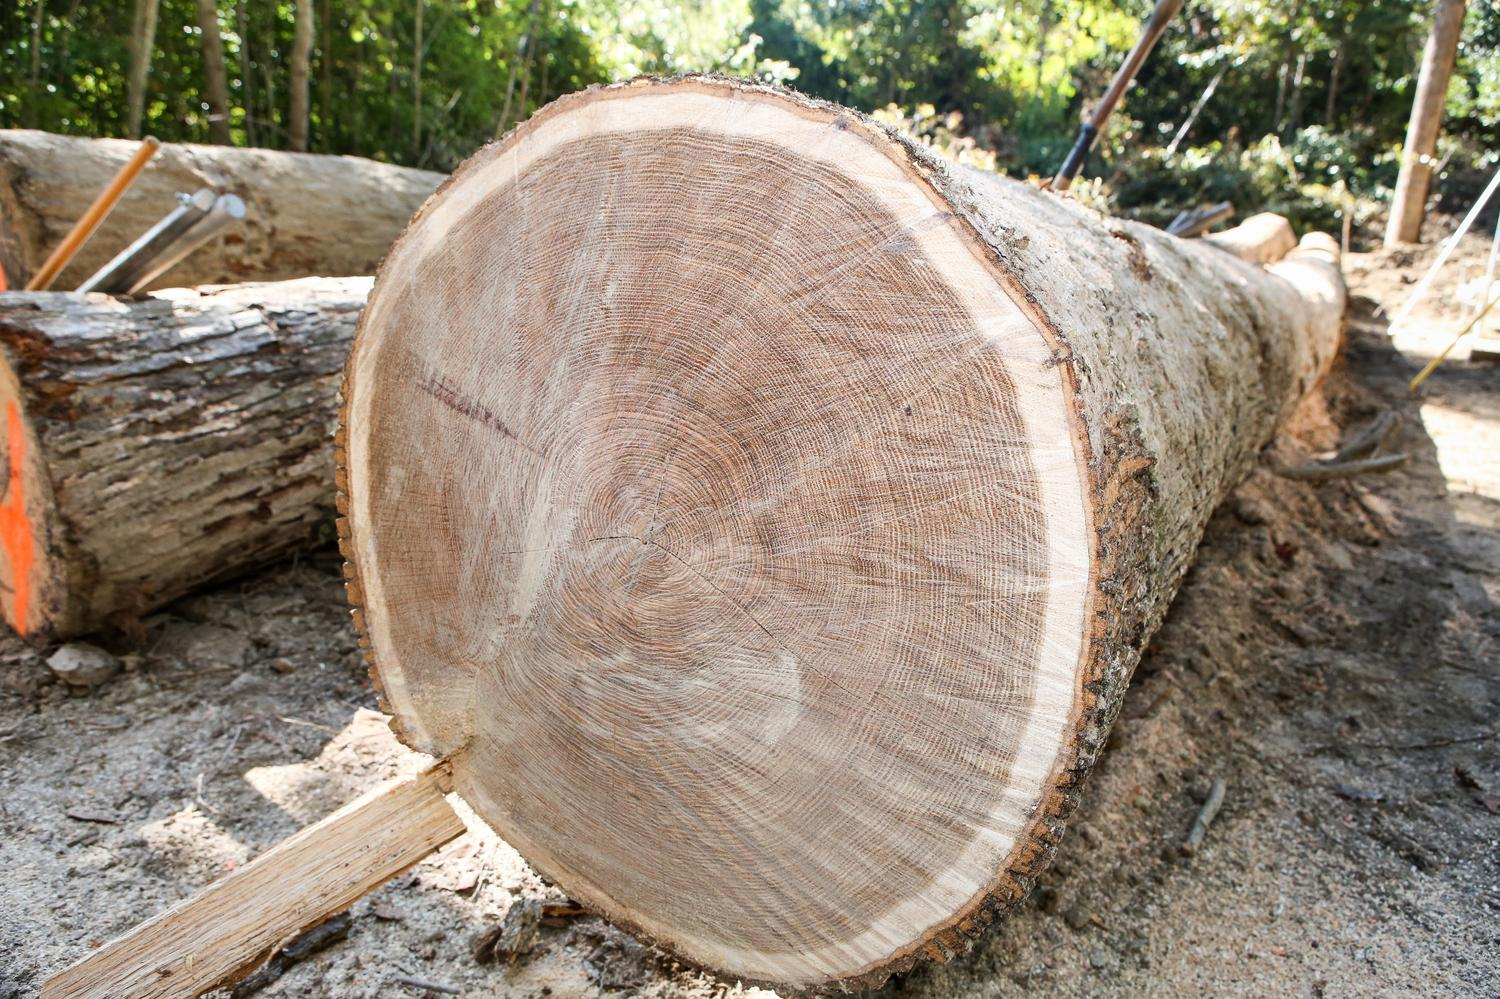 Kentucky Wood Expo to highlight state's forestry industry